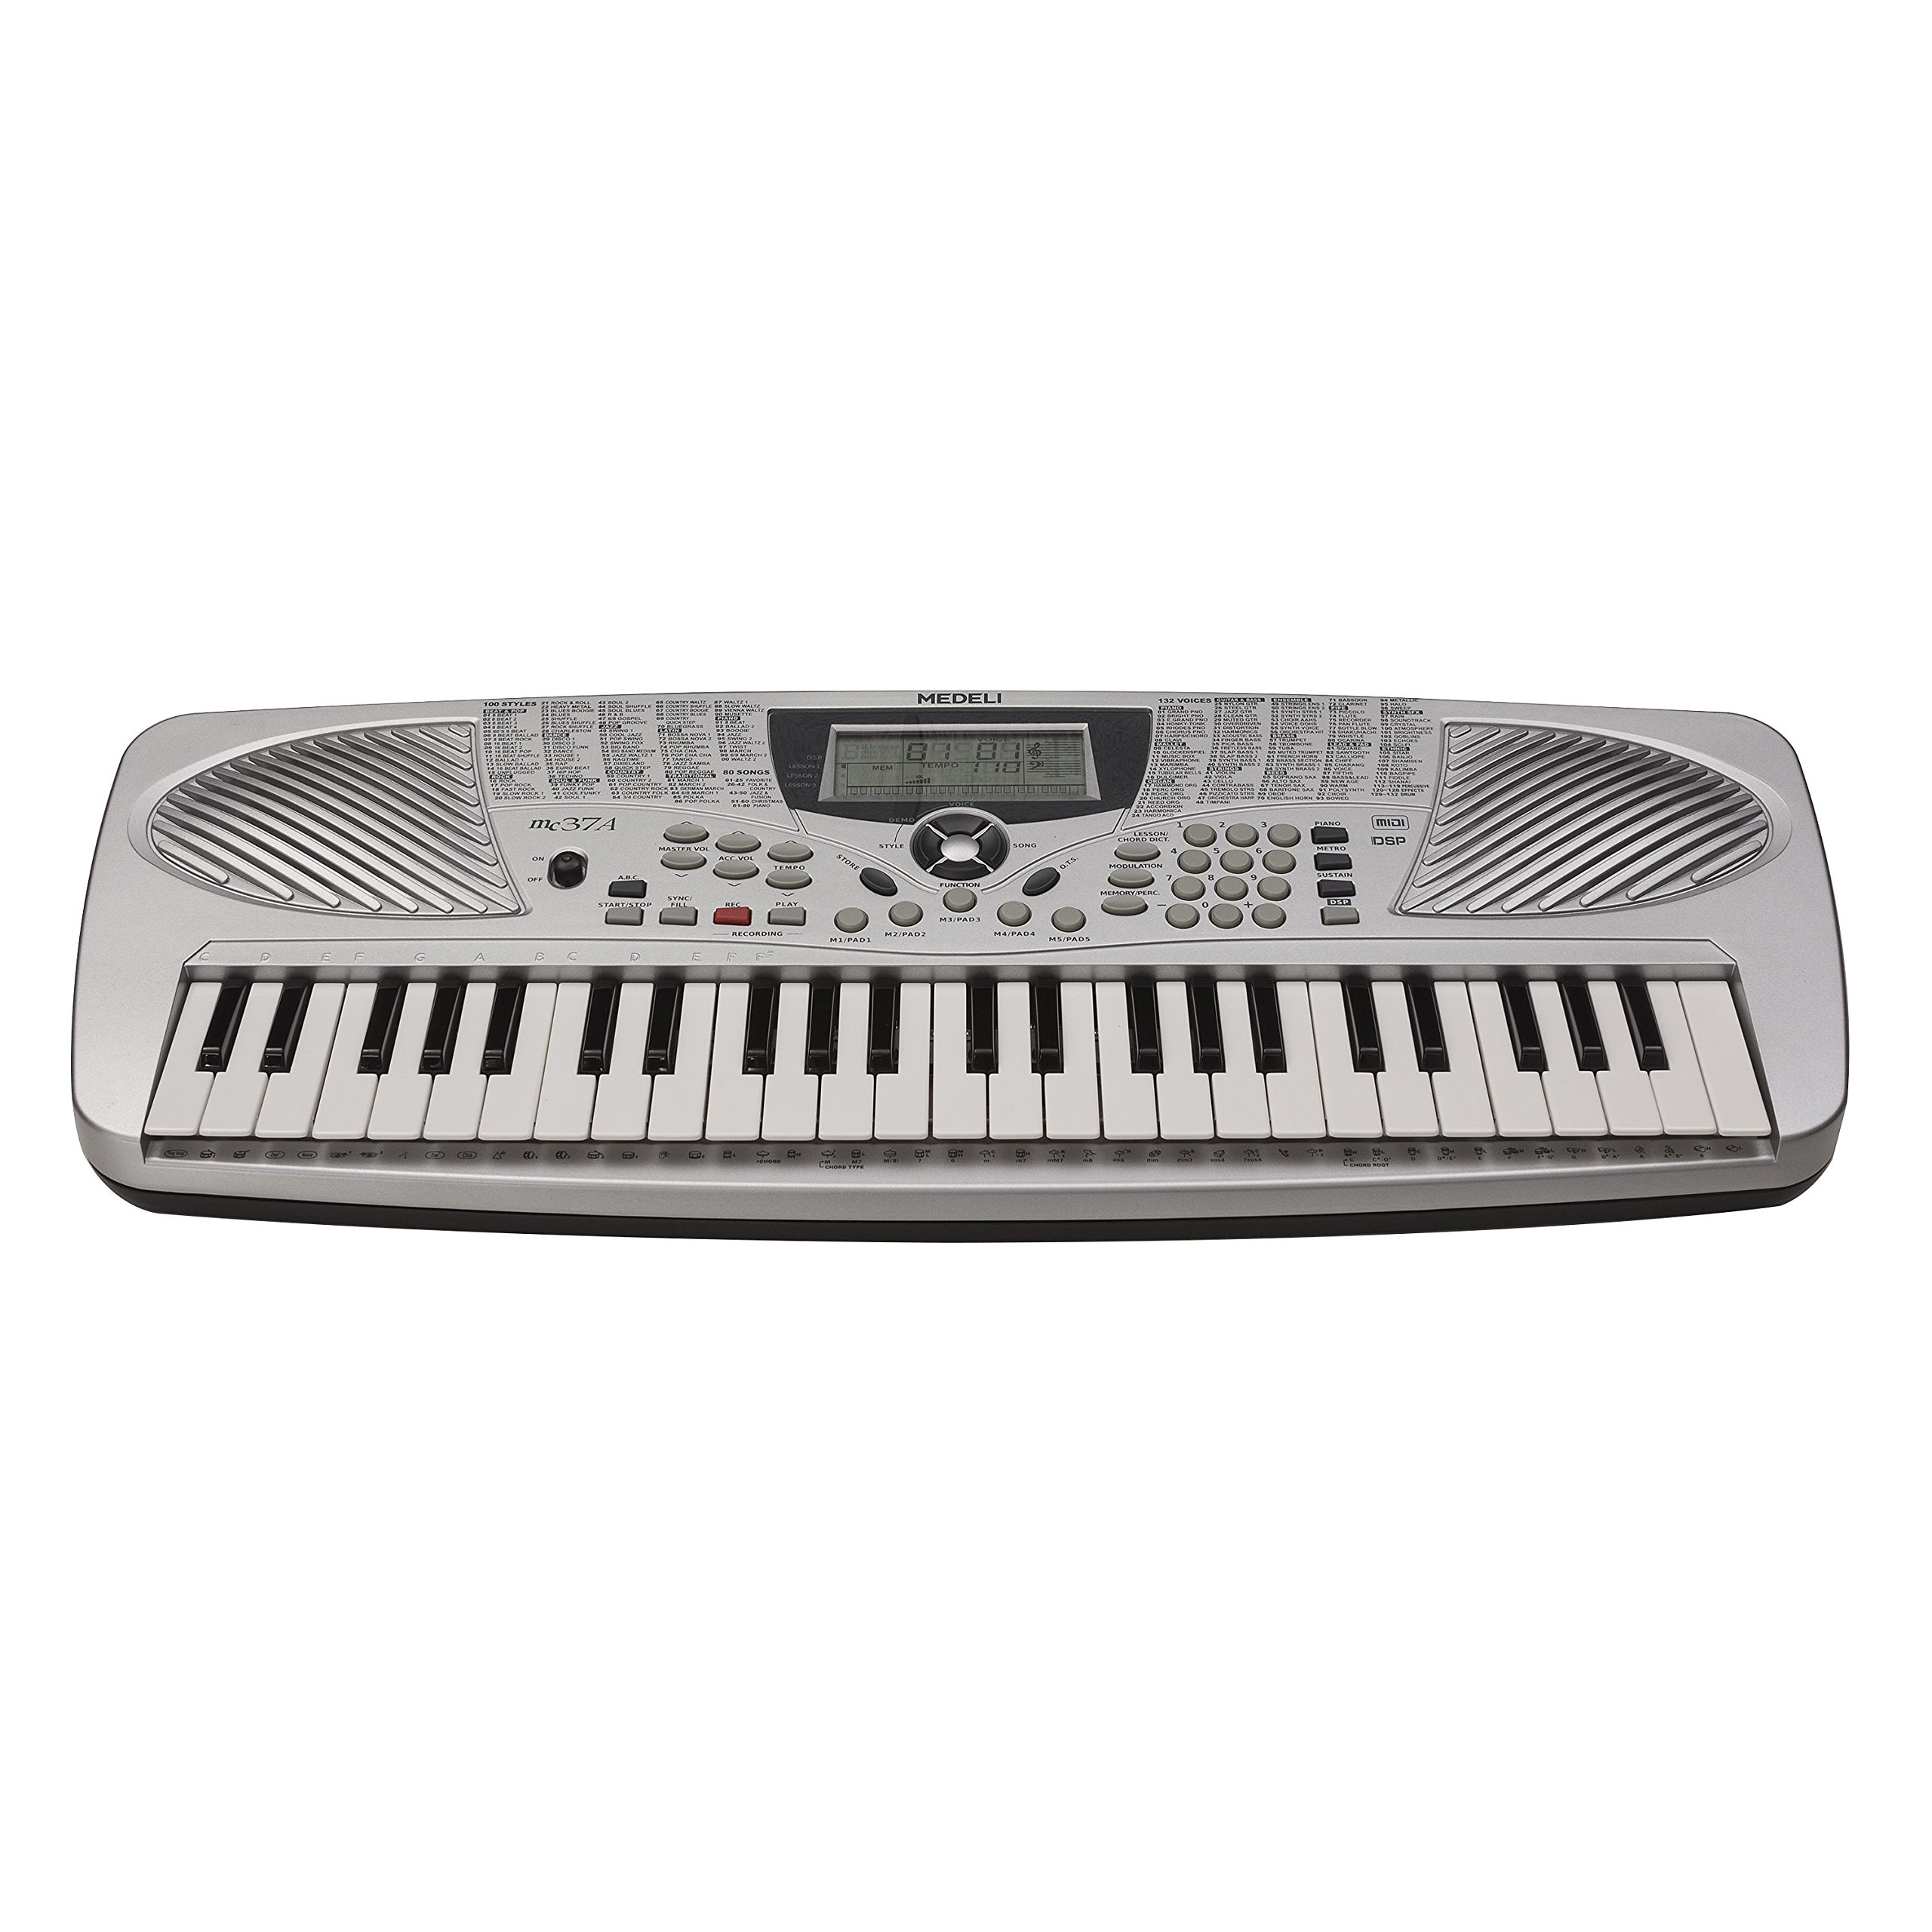 Medeli MC37A 49-Key Portable Keyboard with 132 Voices & USB I/O